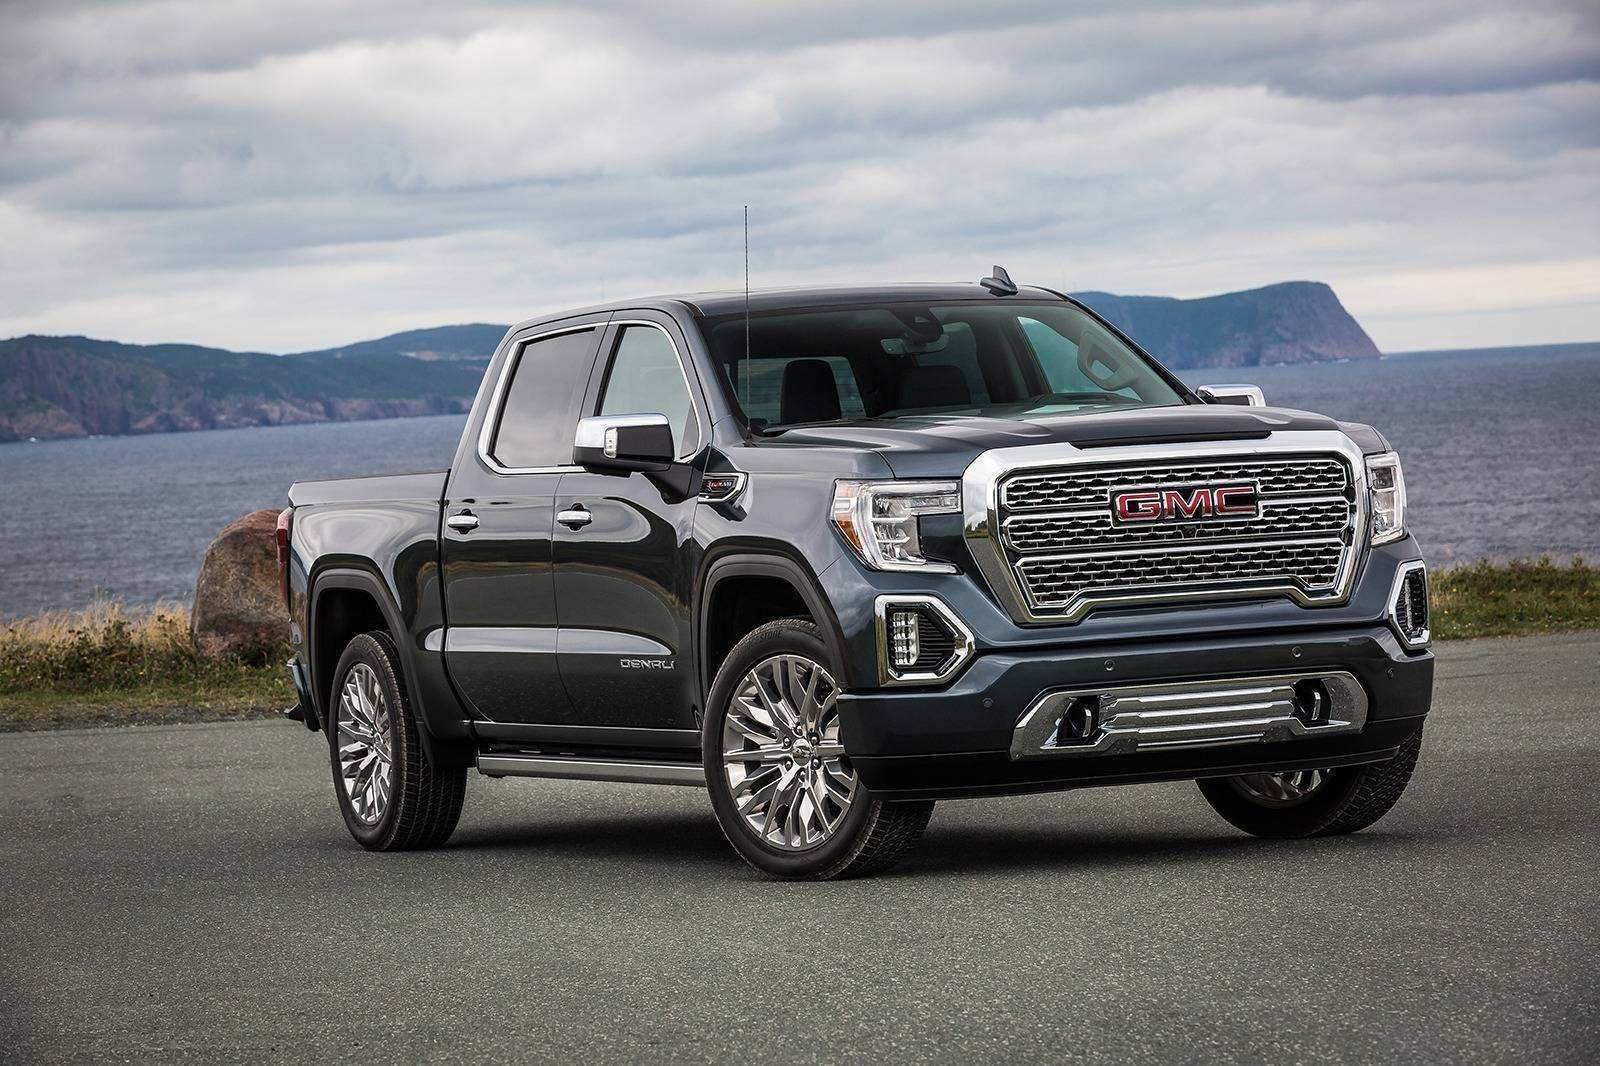 92 New Best Gmc For 2019 First Drive Price Performance And Review Prices with Best Gmc For 2019 First Drive Price Performance And Review